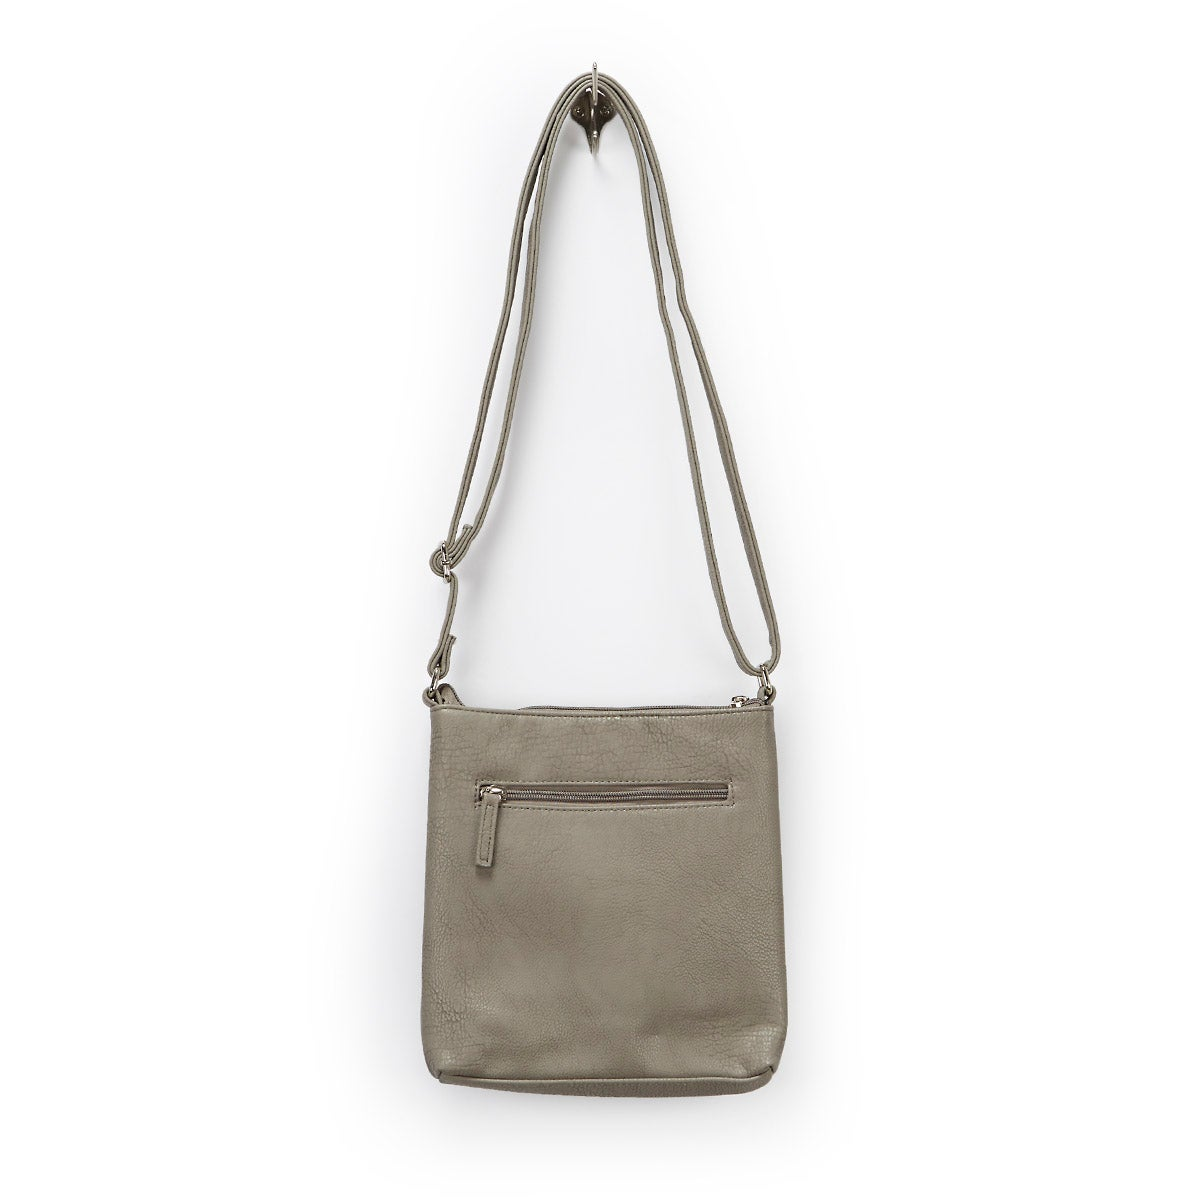 Lds grey north south cross body bag